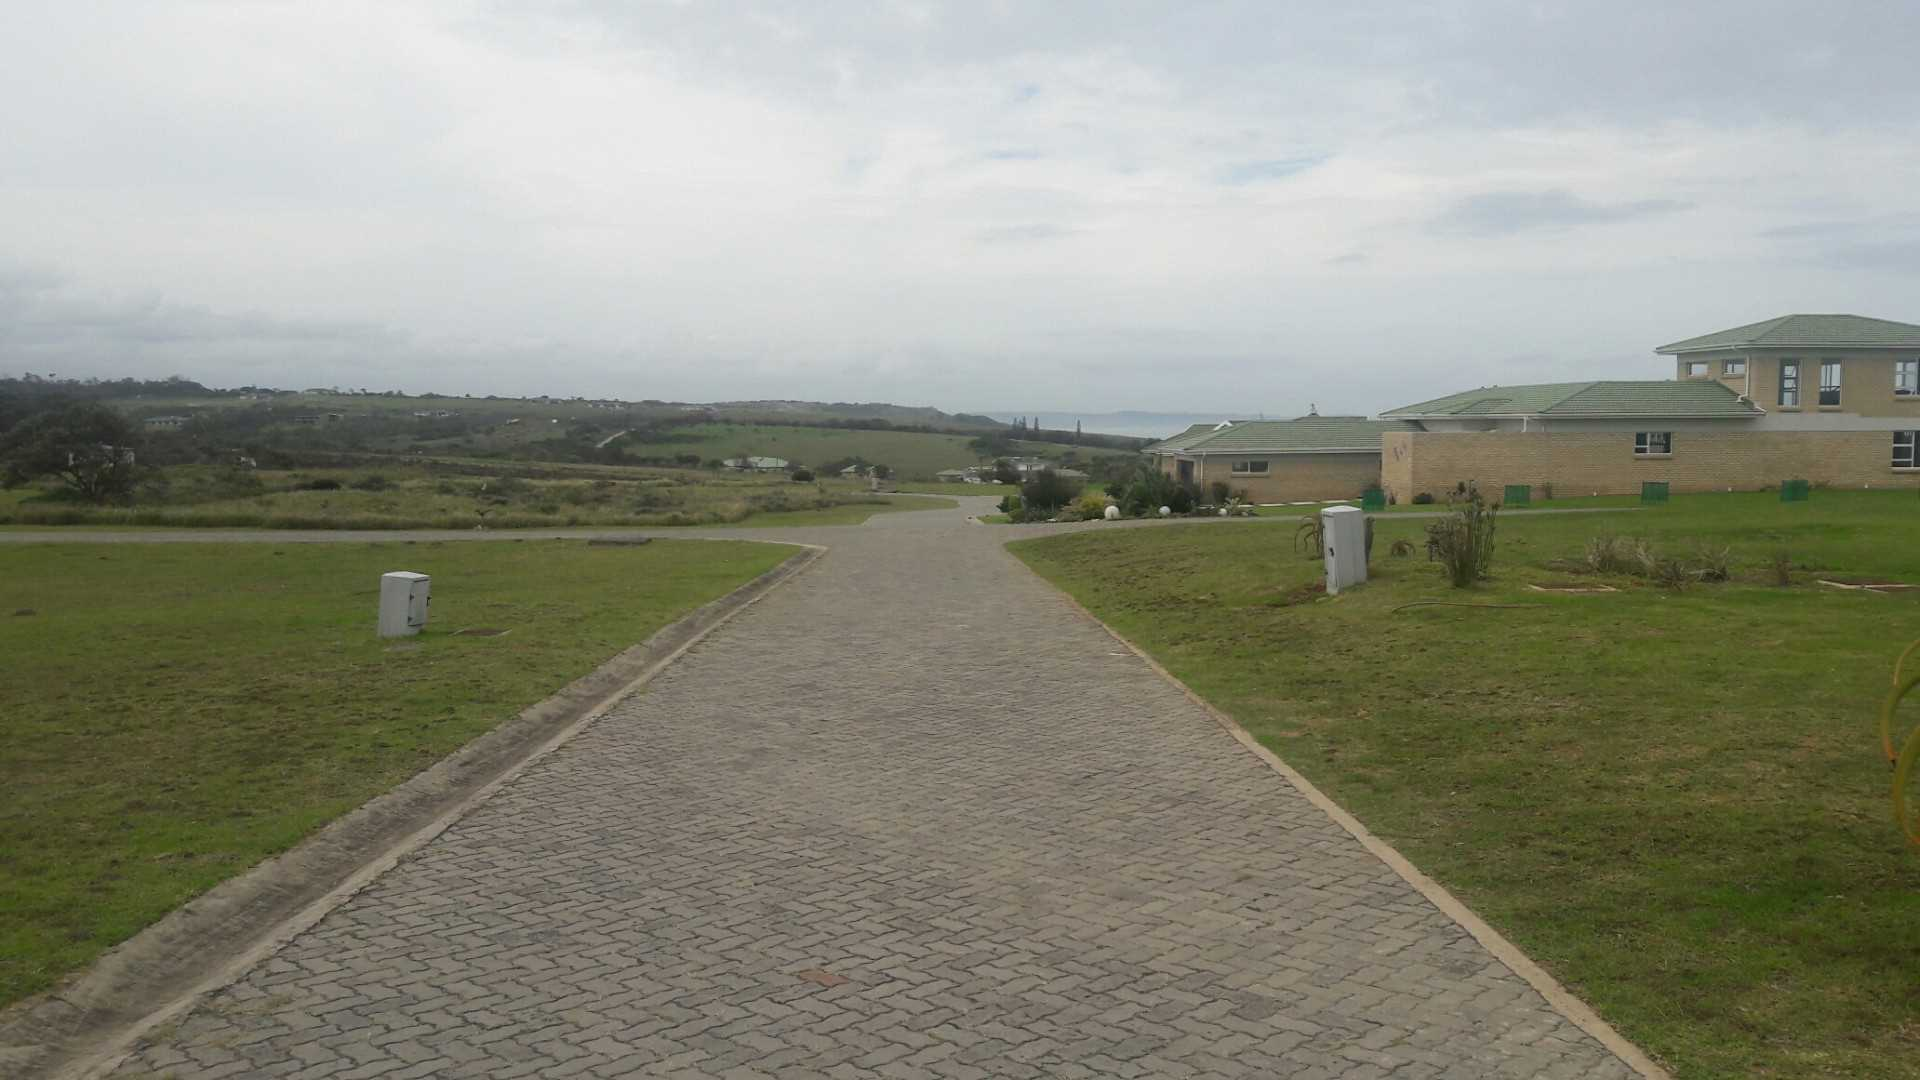 ENTRANCE ROAD ON LEFT - RIGHT TURN INTO ROAD LEADING TO PLOT